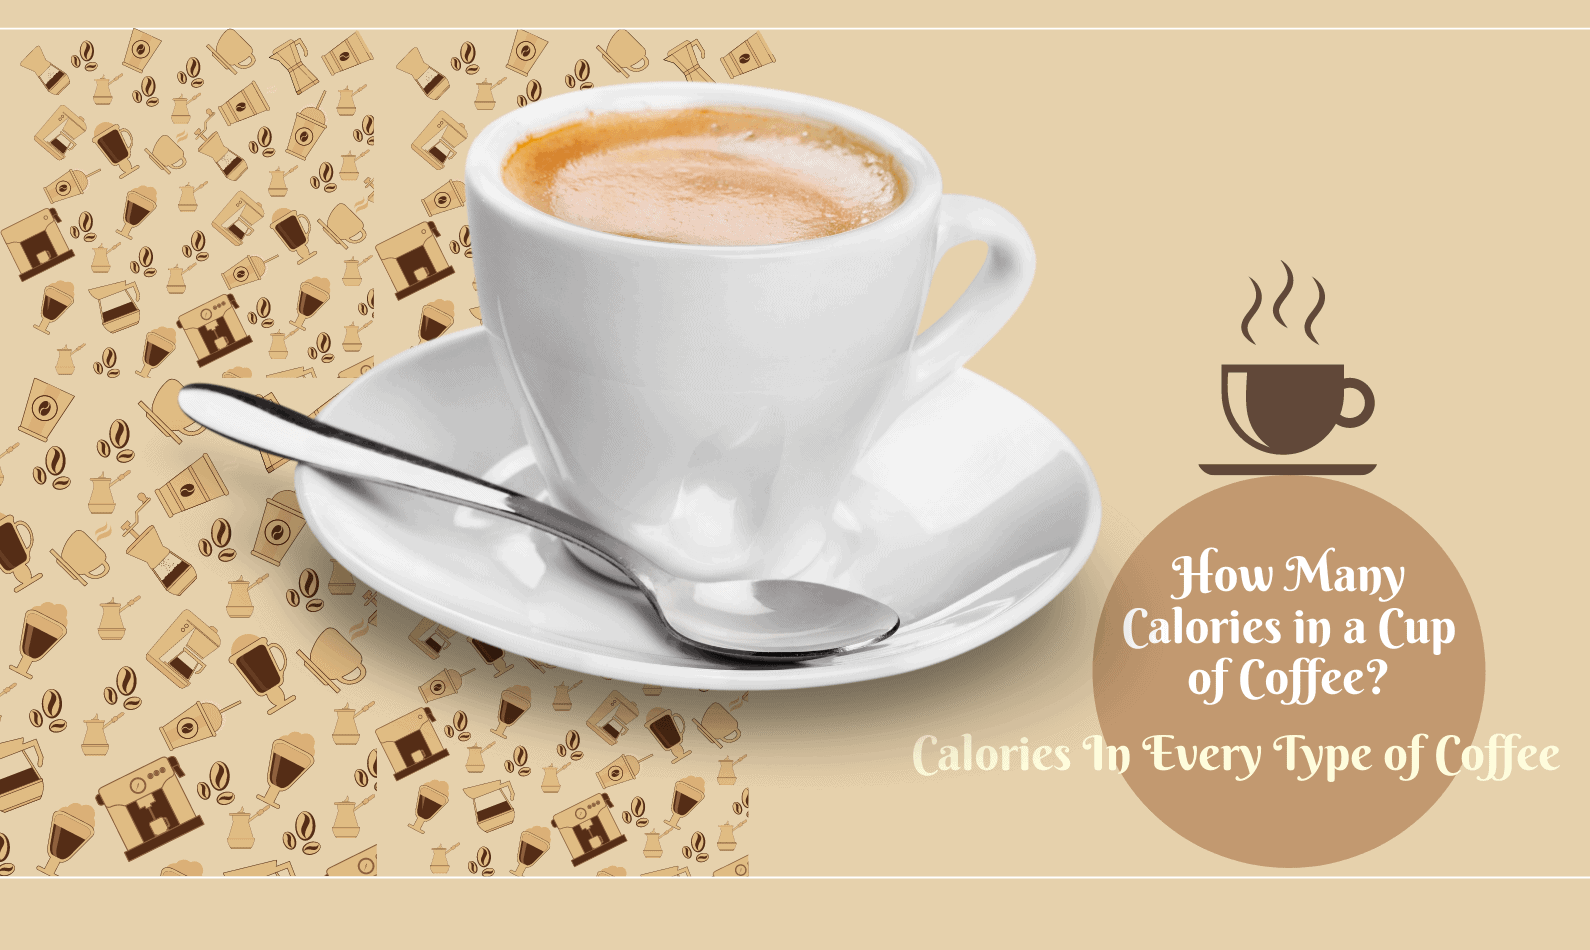 How Many Calories in a Cup of Coffee